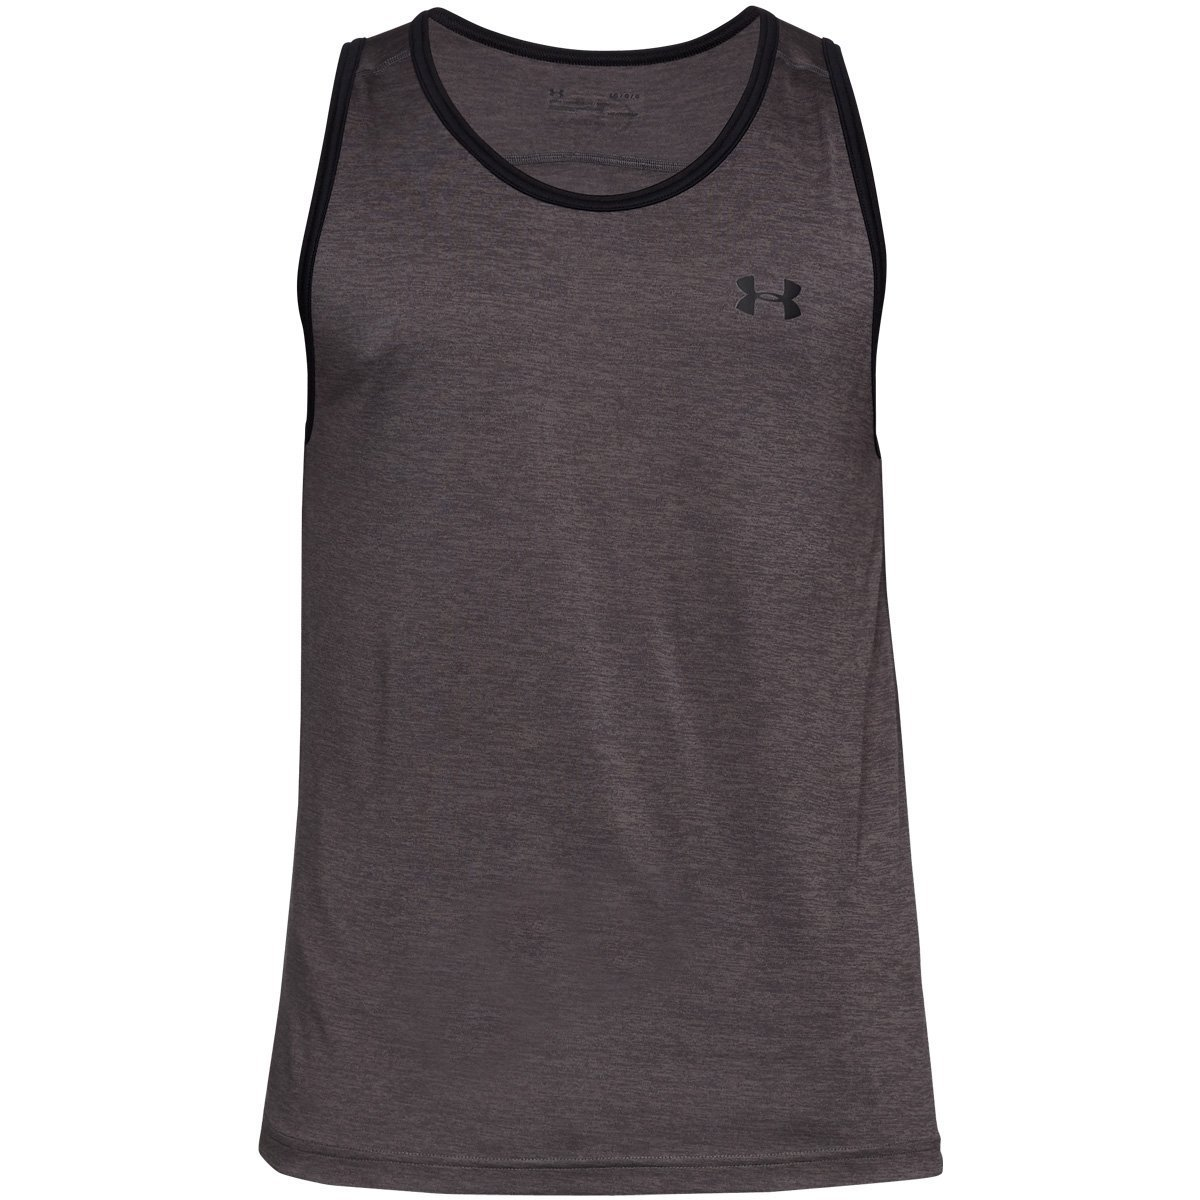 Under Armour Men's Tech Tank Top, Charcoal (020)/Black, Small